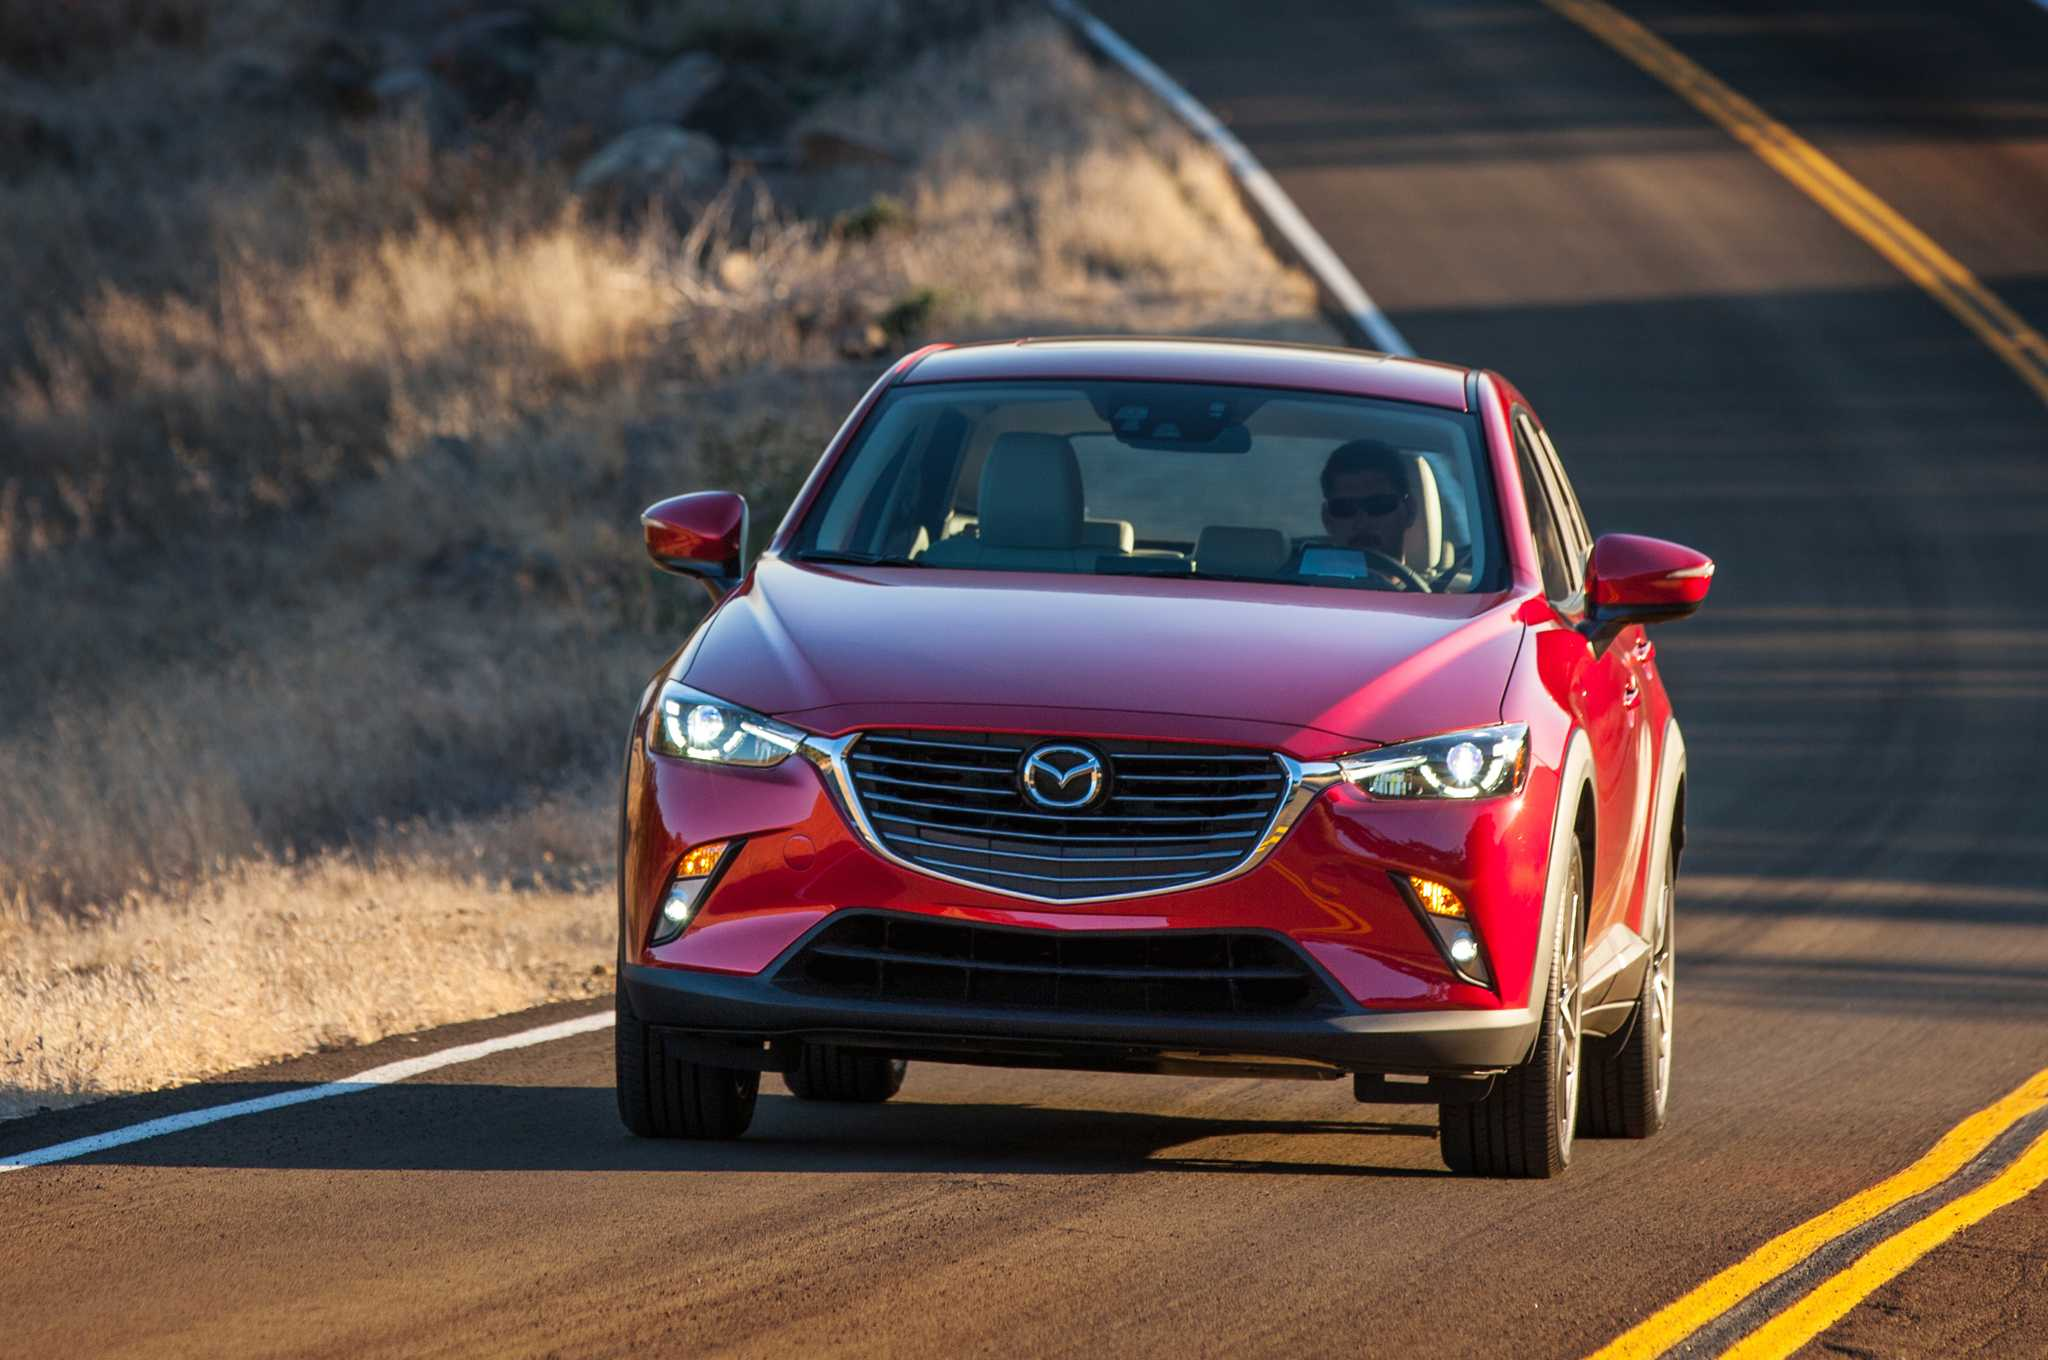 2017 Mazda CX-3 Gets Minor Updates, Priced at $20,860